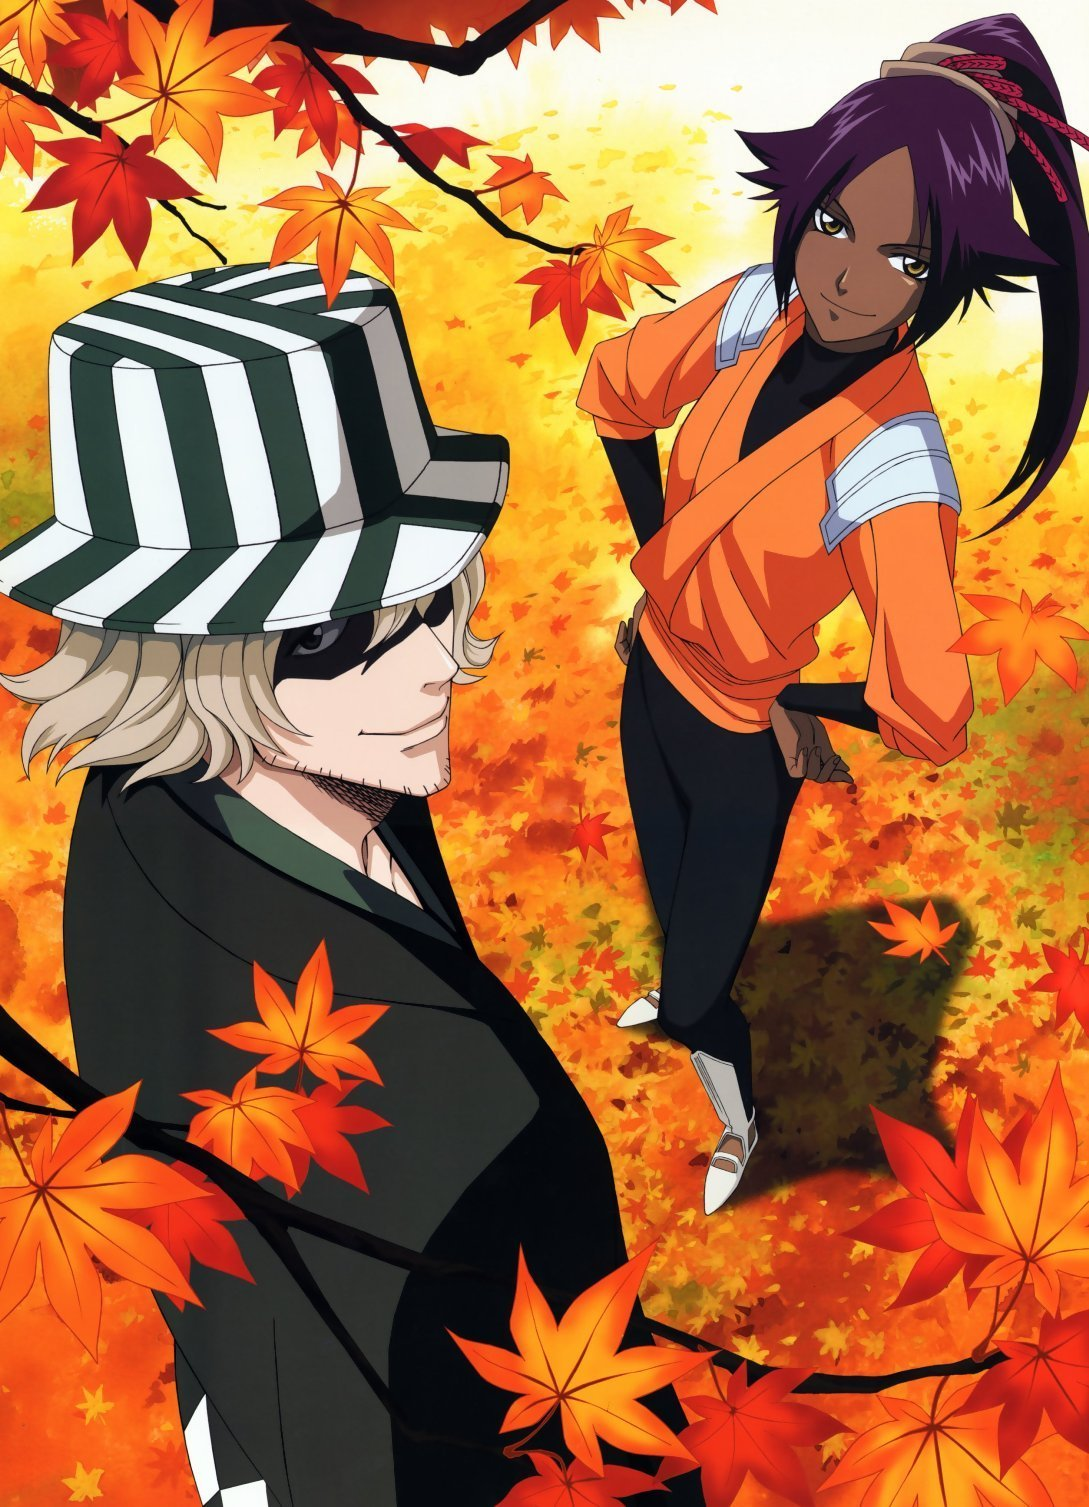 bleach anime and manga images urahara and yoruichi hd wallpaper and background photos  34838786